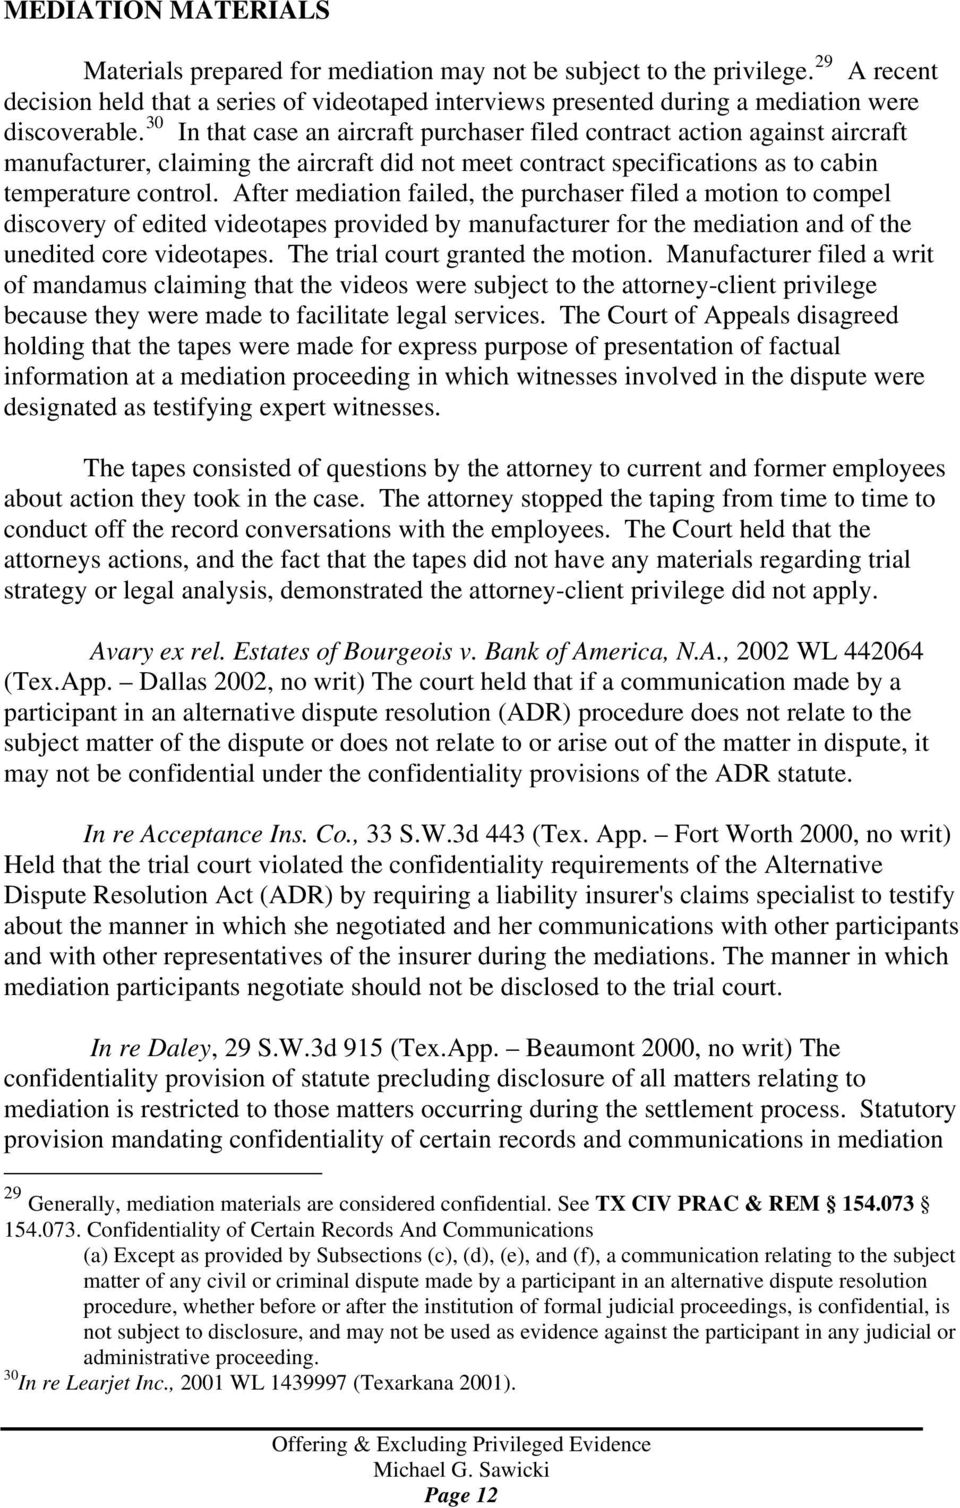 30 In that case an aircraft purchaser filed contract action against aircraft manufacturer, claiming the aircraft did not meet contract specifications as to cabin temperature control.